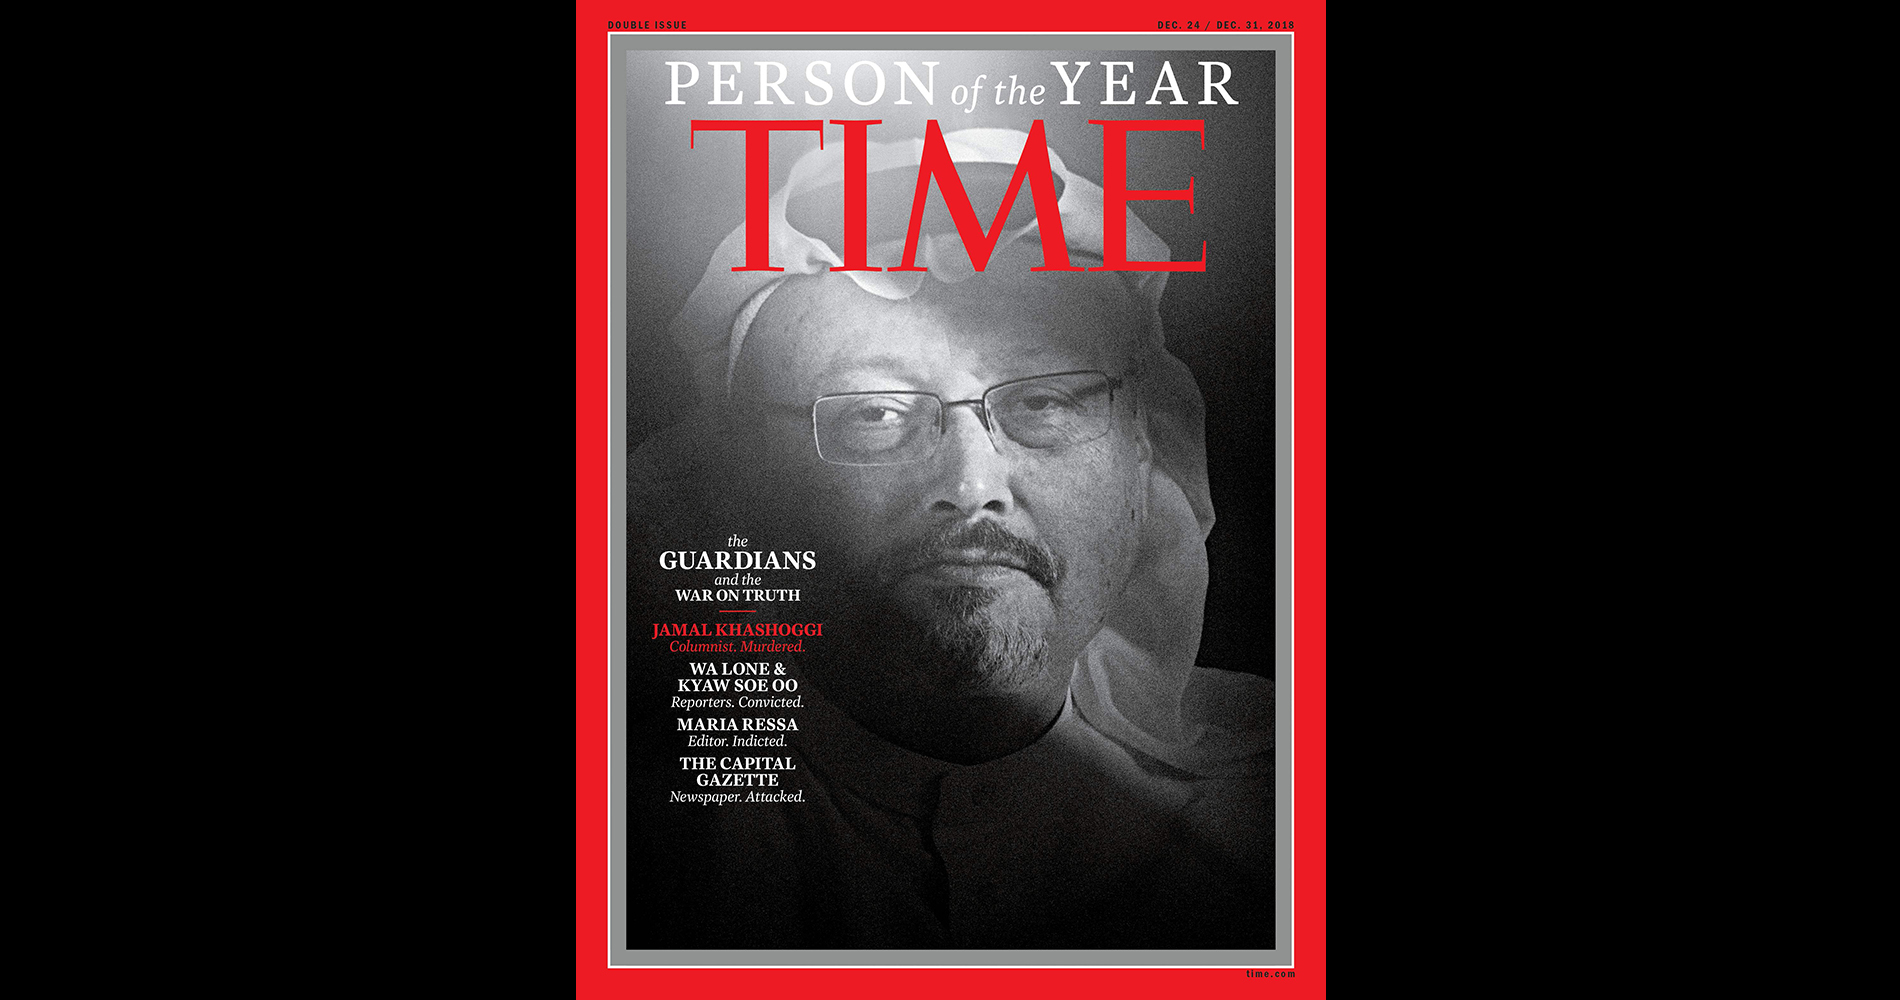 Time Person Of The Year Is The Guardians In 2018 Including Slain Journalist Jamal Khashoggi The Washington Post